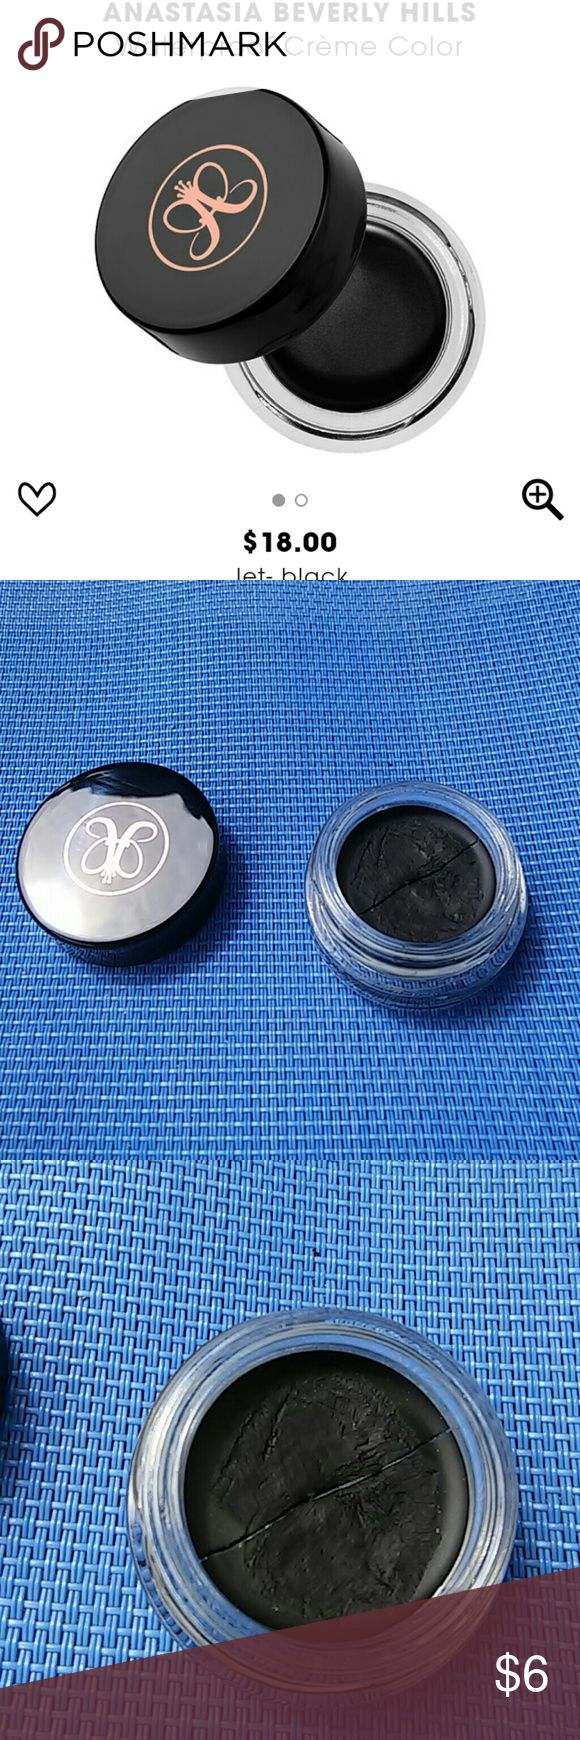 Anastasia Beverly Hills Waterproof Creme Color Anastasia Beverly Hills Waterproof Creme Color in 'Jet' Black. 95% full. There is a crack in the middle, please see pictures. Anastasia Beverly Hills Makeup Eyeliner